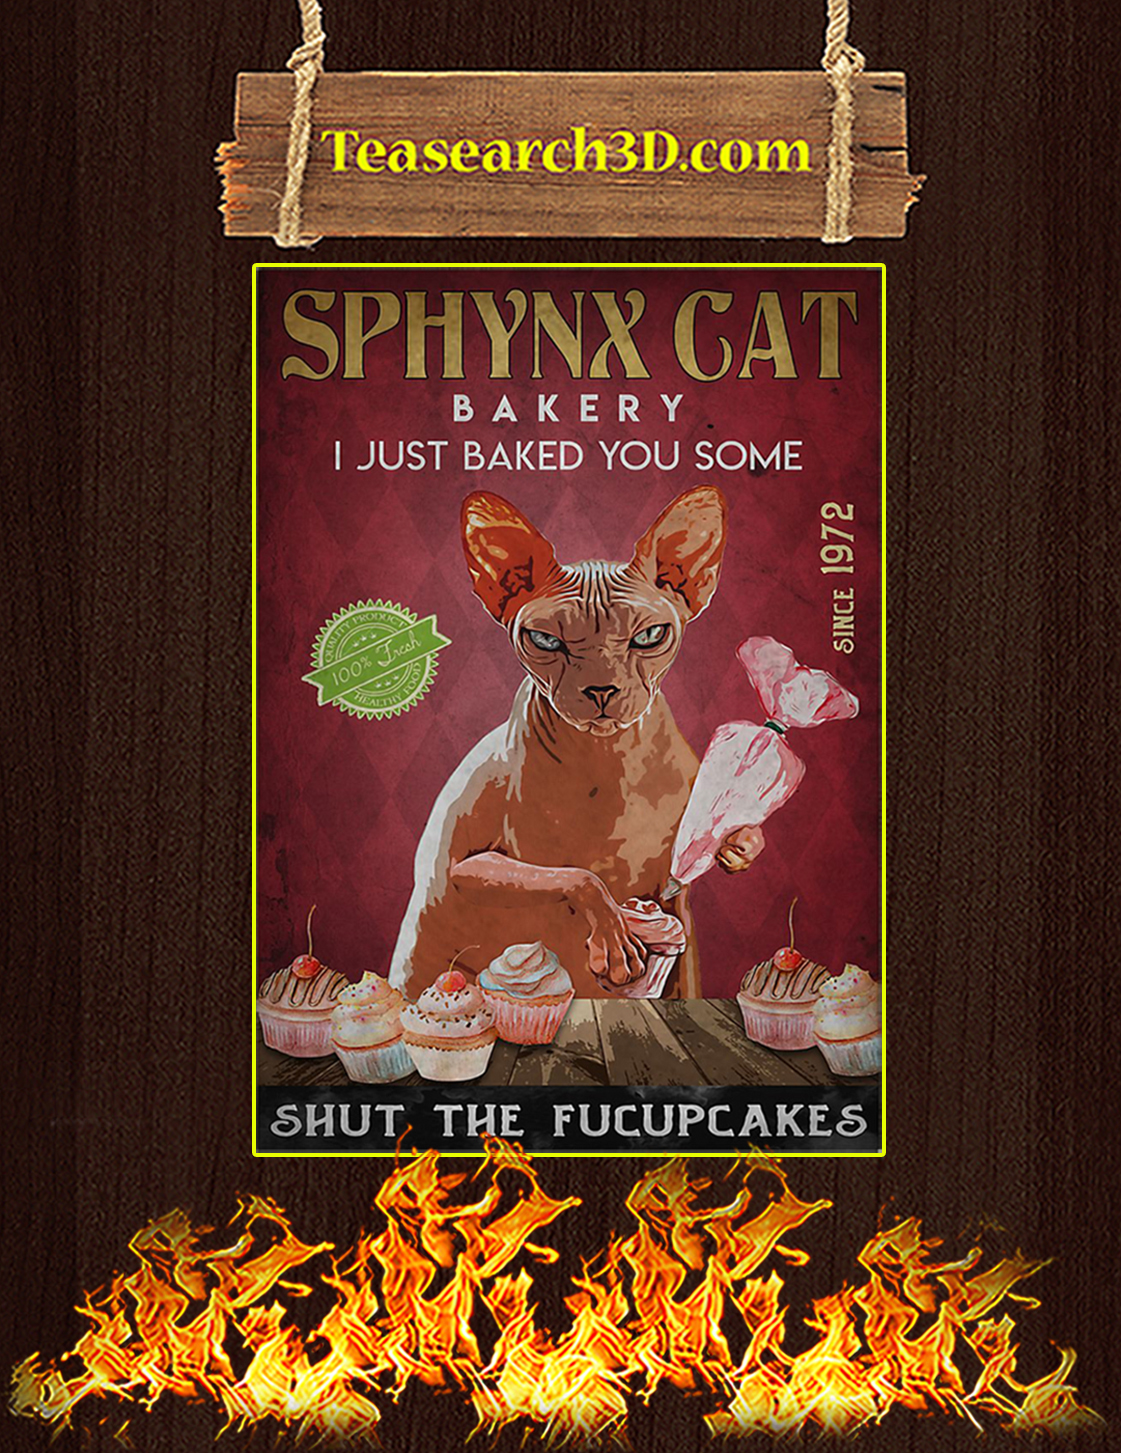 Sphynx Cat Bakery I Just Baked You Some Shut The Fucupcakes Poster A3